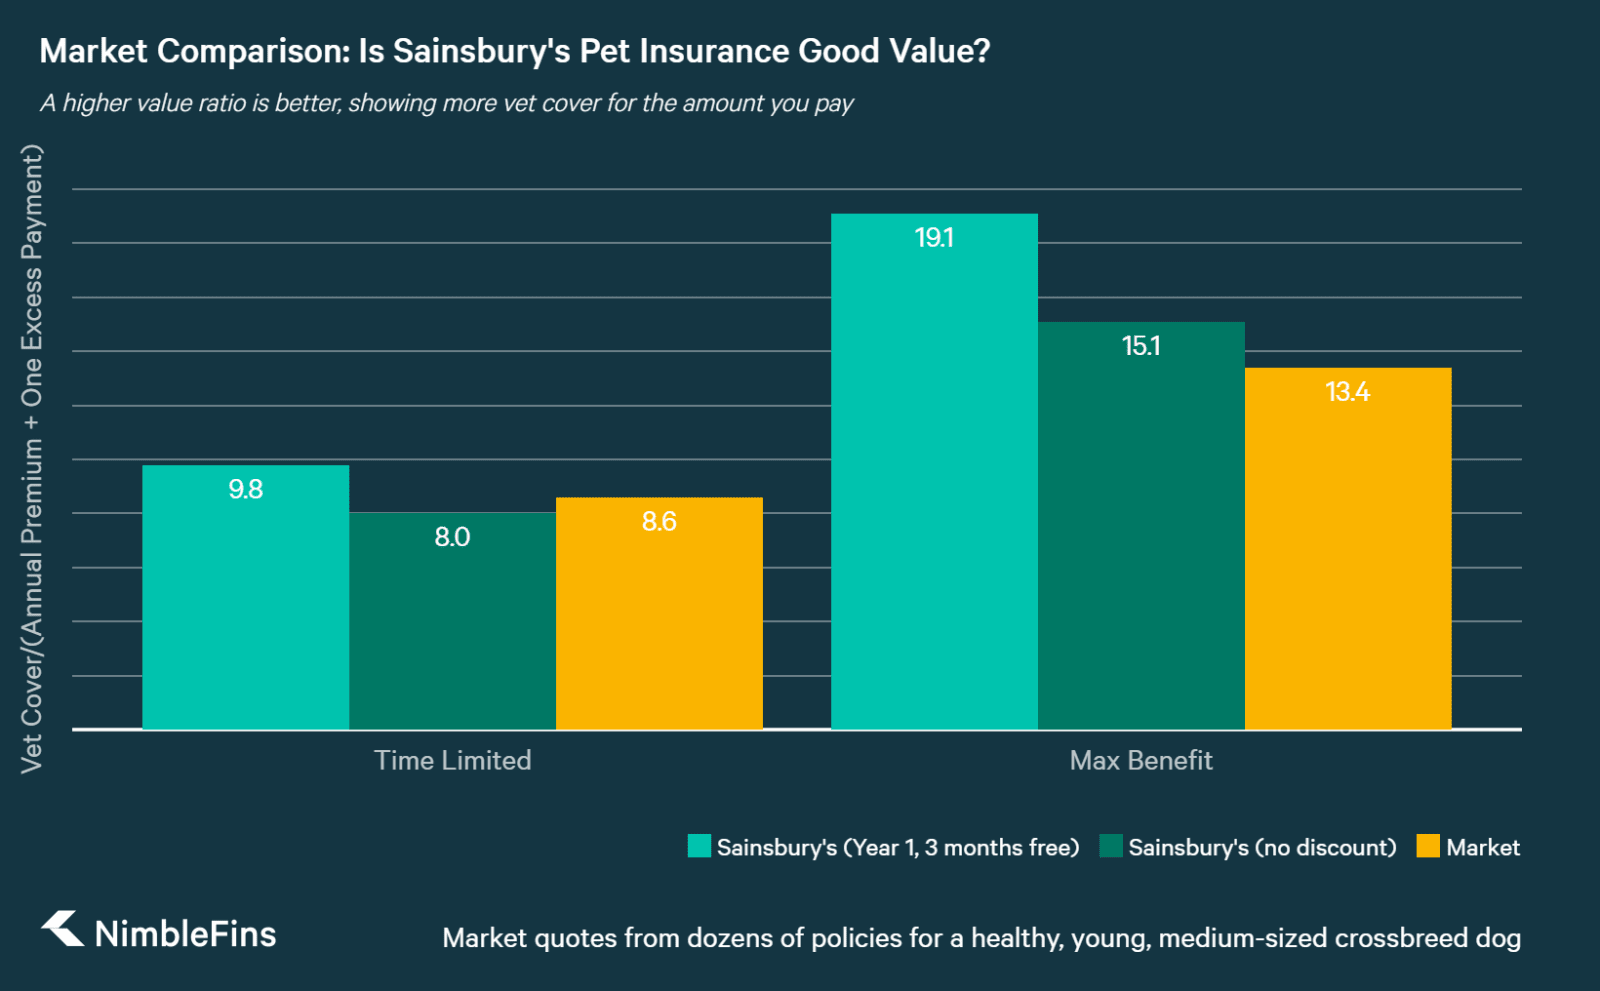 chart comparing pet insurance quotes by policy type for Sainsbury's vs the market average